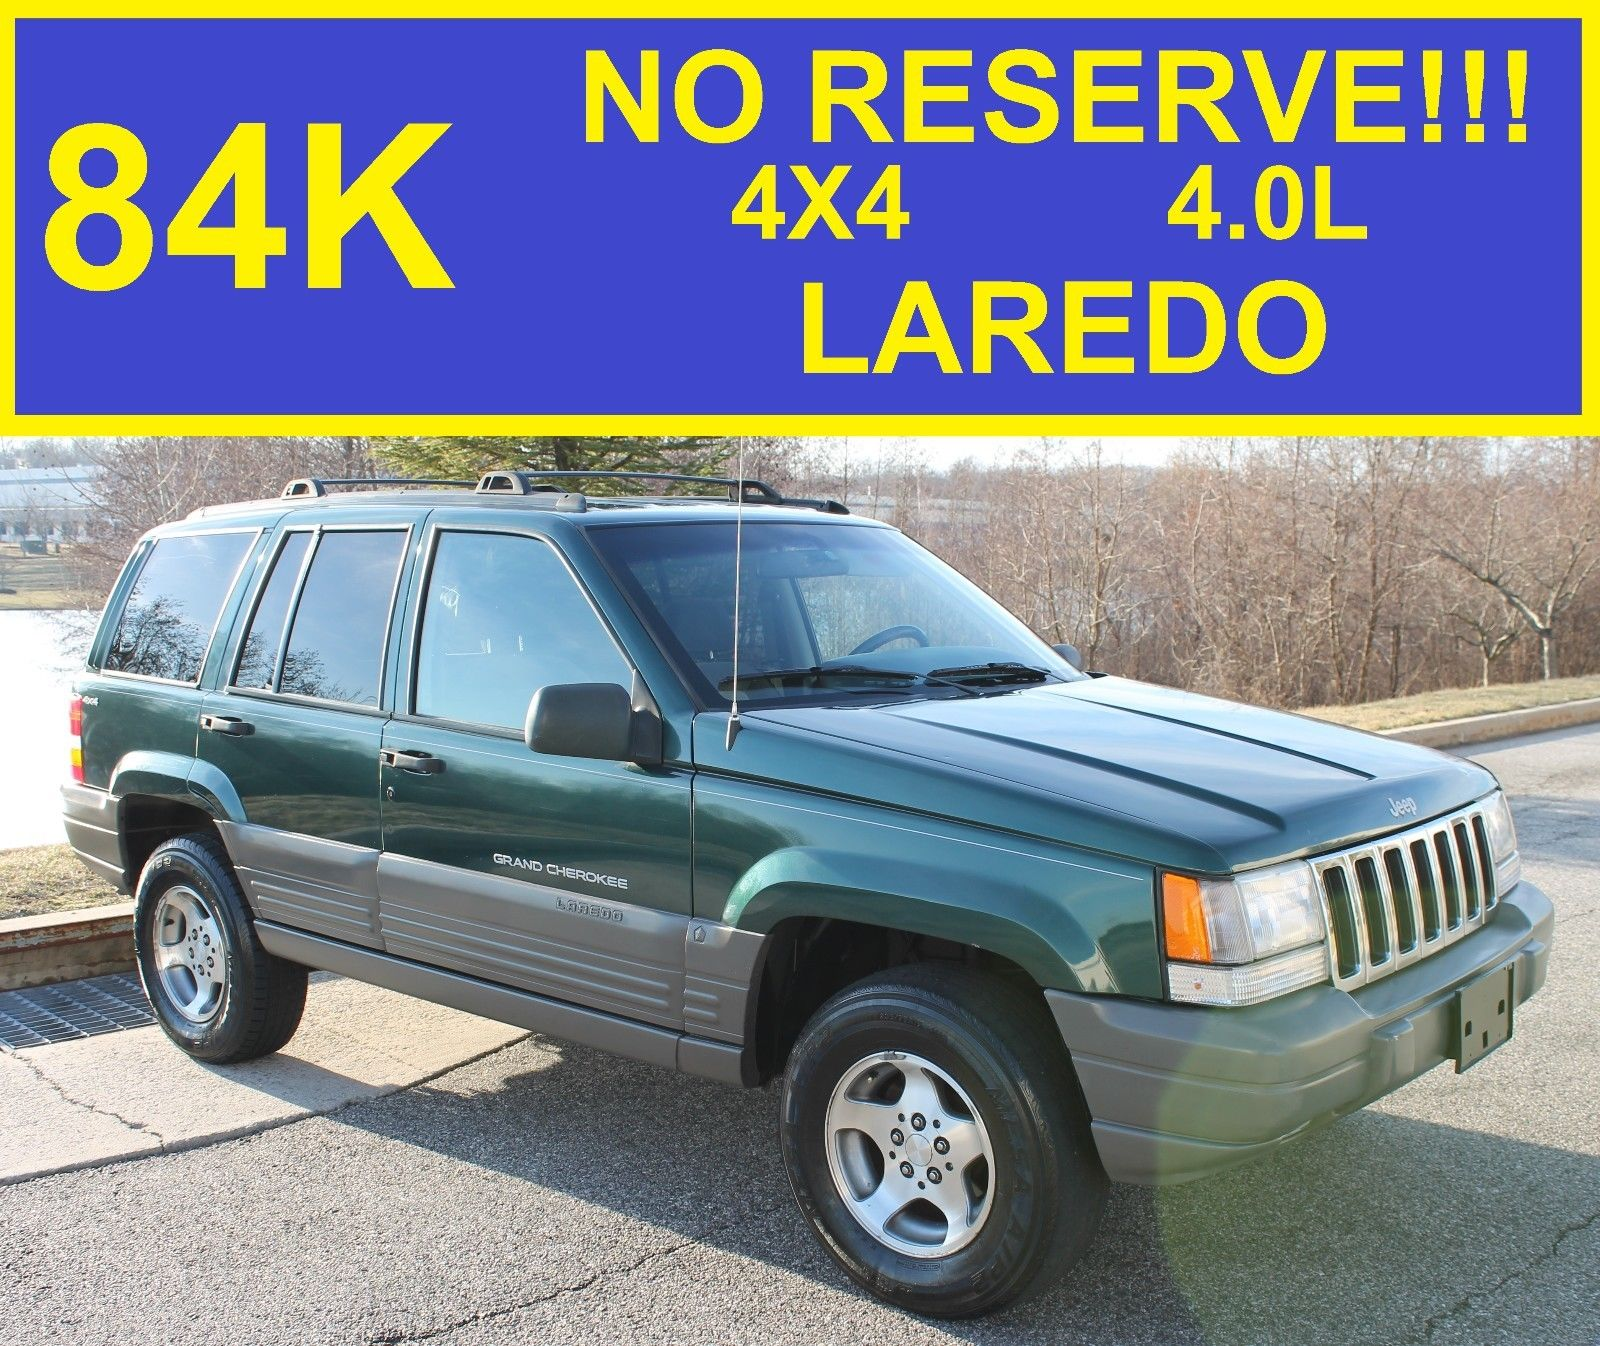 great 1998 jeep grand cherokee laredo no reserve laredo 84k jeep grand cherokee sport 4runner. Black Bedroom Furniture Sets. Home Design Ideas